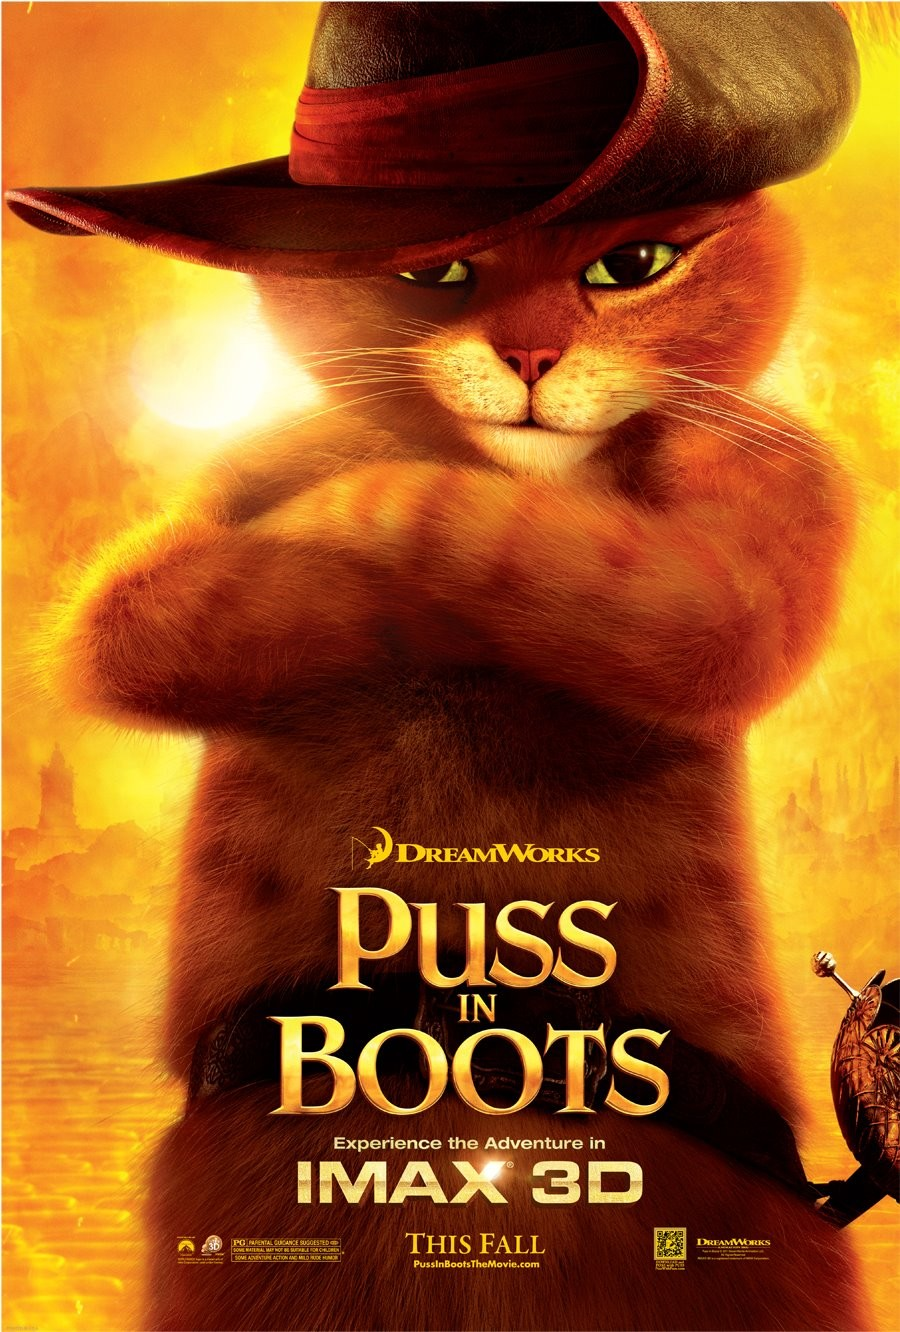 Puss In Boots Continues To Charm In New Poster - HeyUGuys